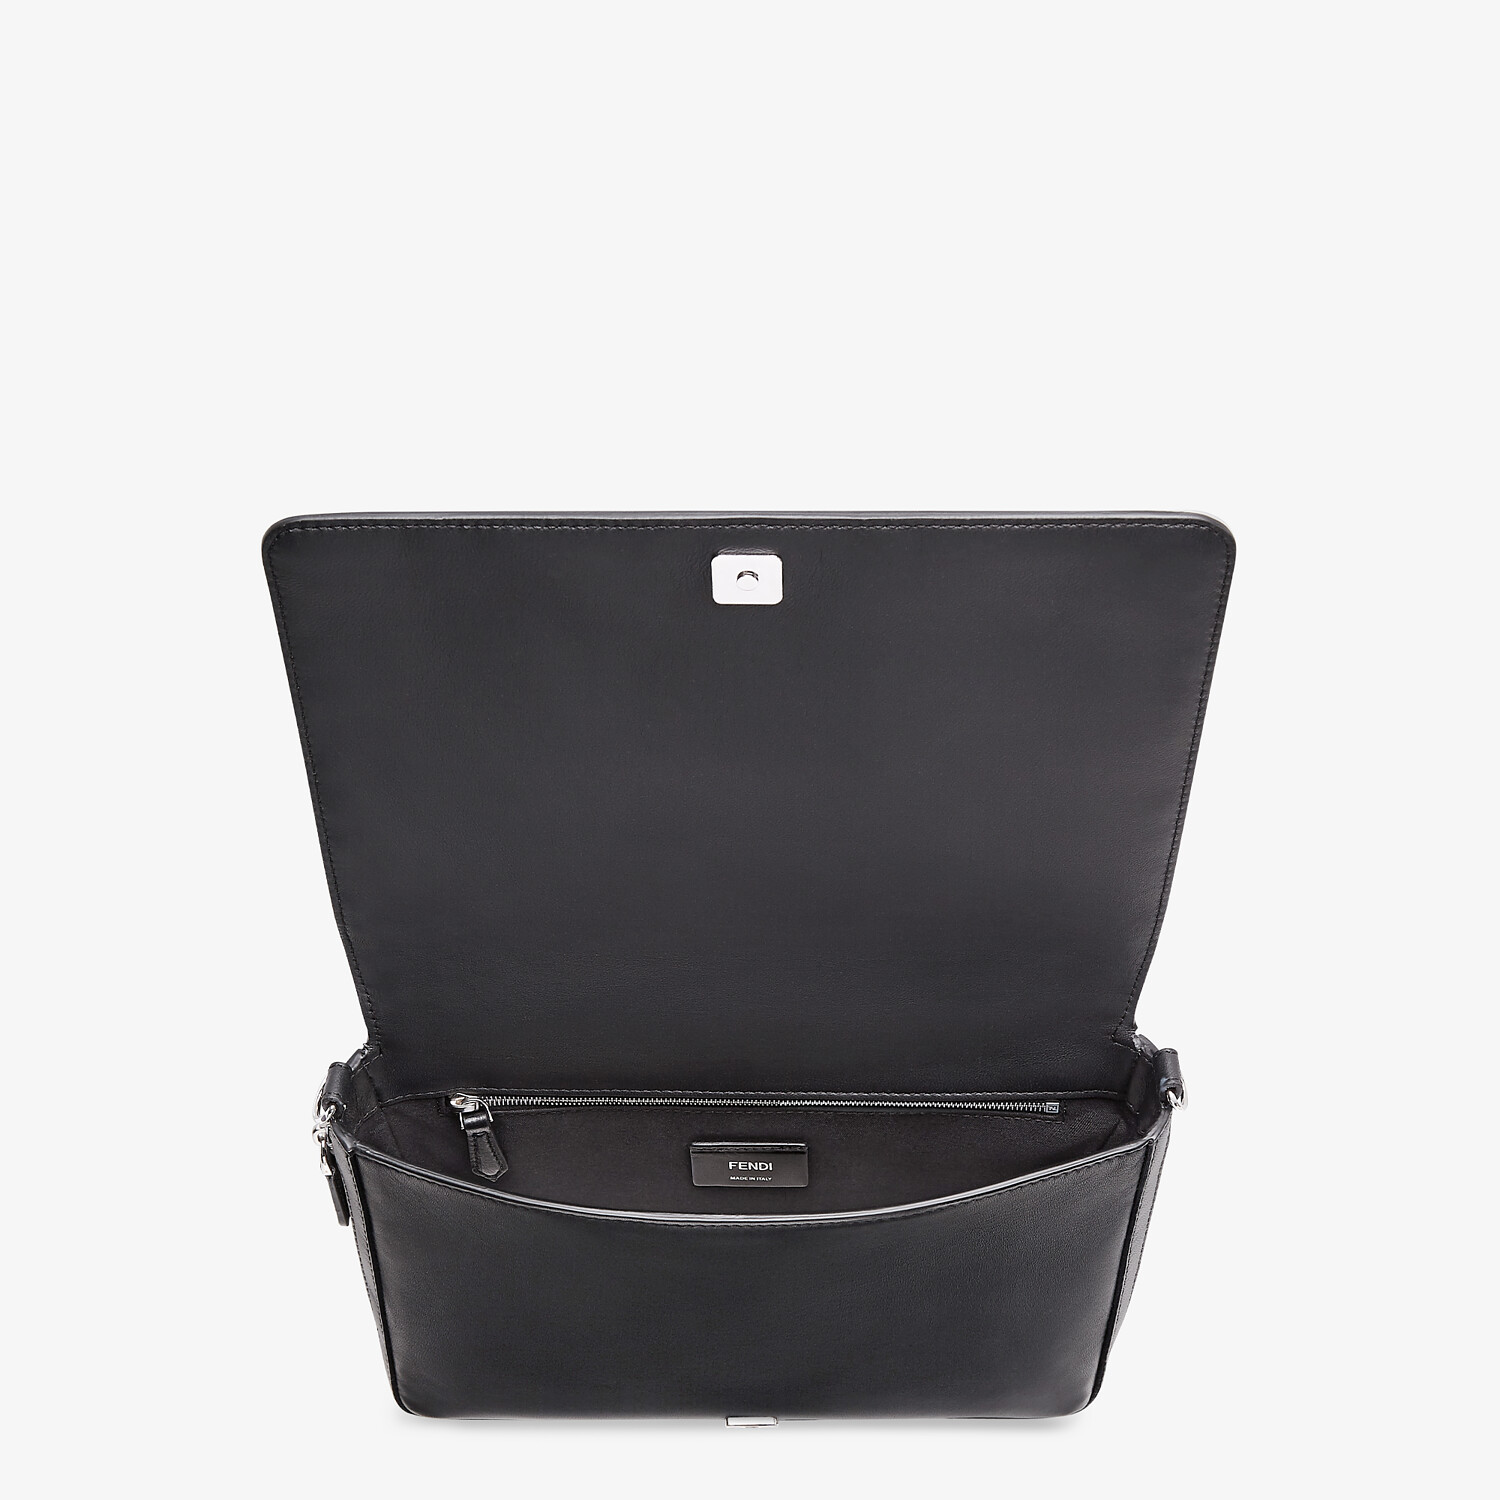 FENDI MESSENGER - Black nappa leather bag - view 5 detail